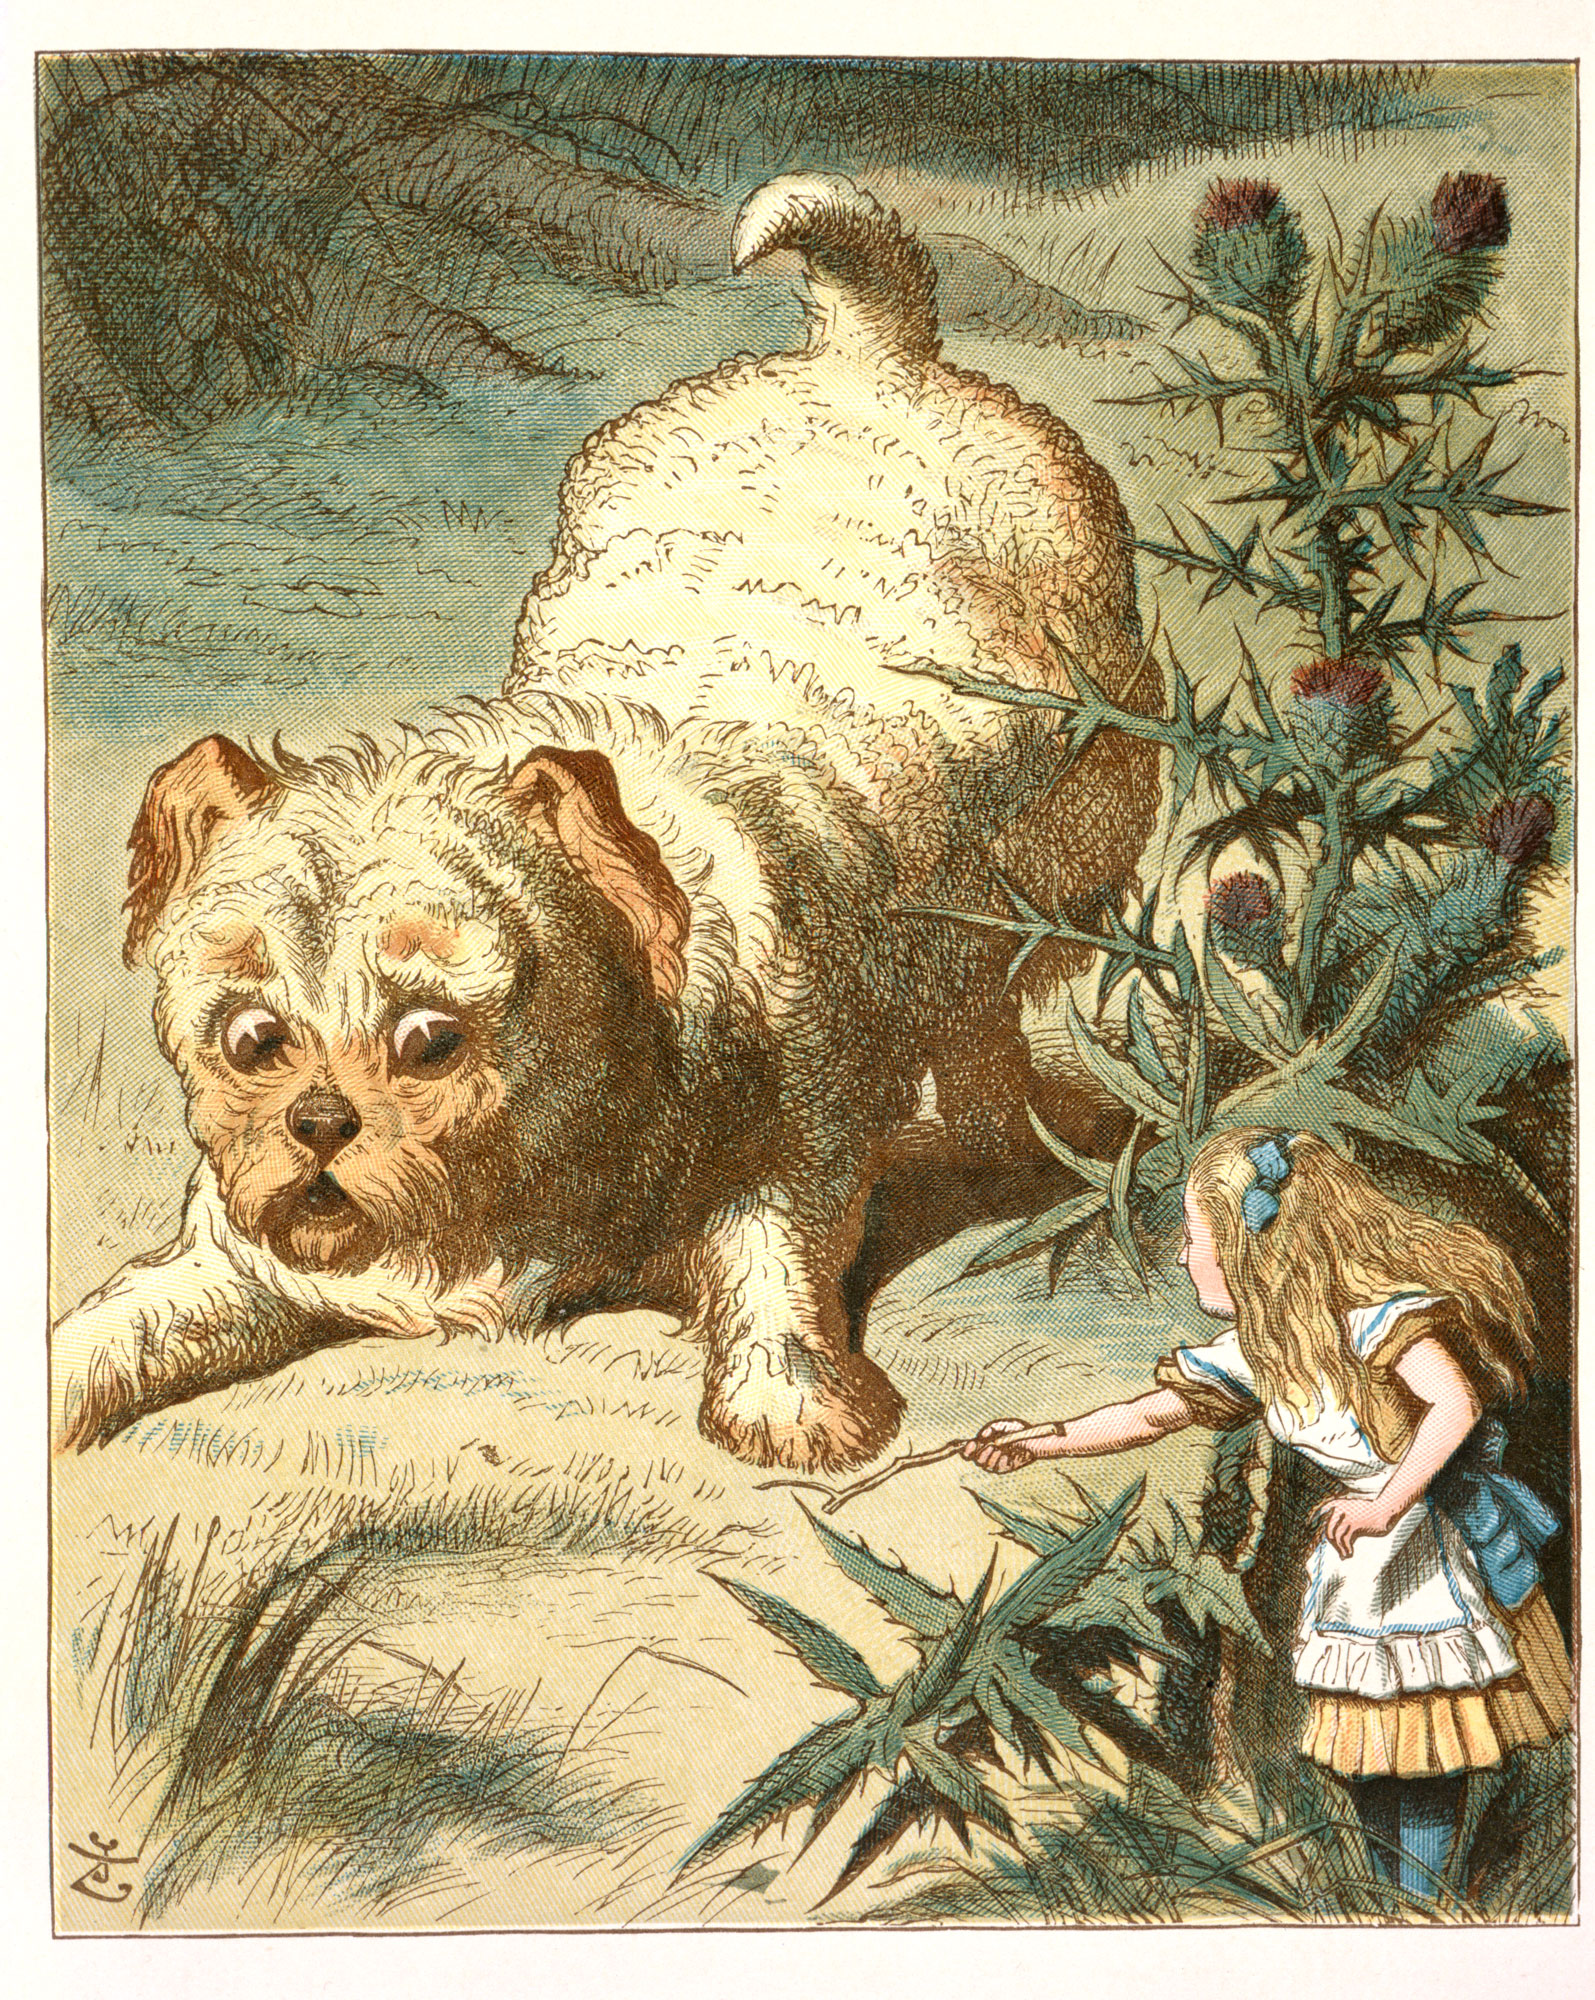 John Tenniel,  the illustrator, humourist and political cartoonist who was a star of Punch magazine, and illustrated Lewis Caroll's Alice adventures was born in London 200 years ago today.  He is honoured with a Google Doodle - and a mention @BBCRadio3 (pic @britishlibrary) https://t.co/3Ph0XJZpgv